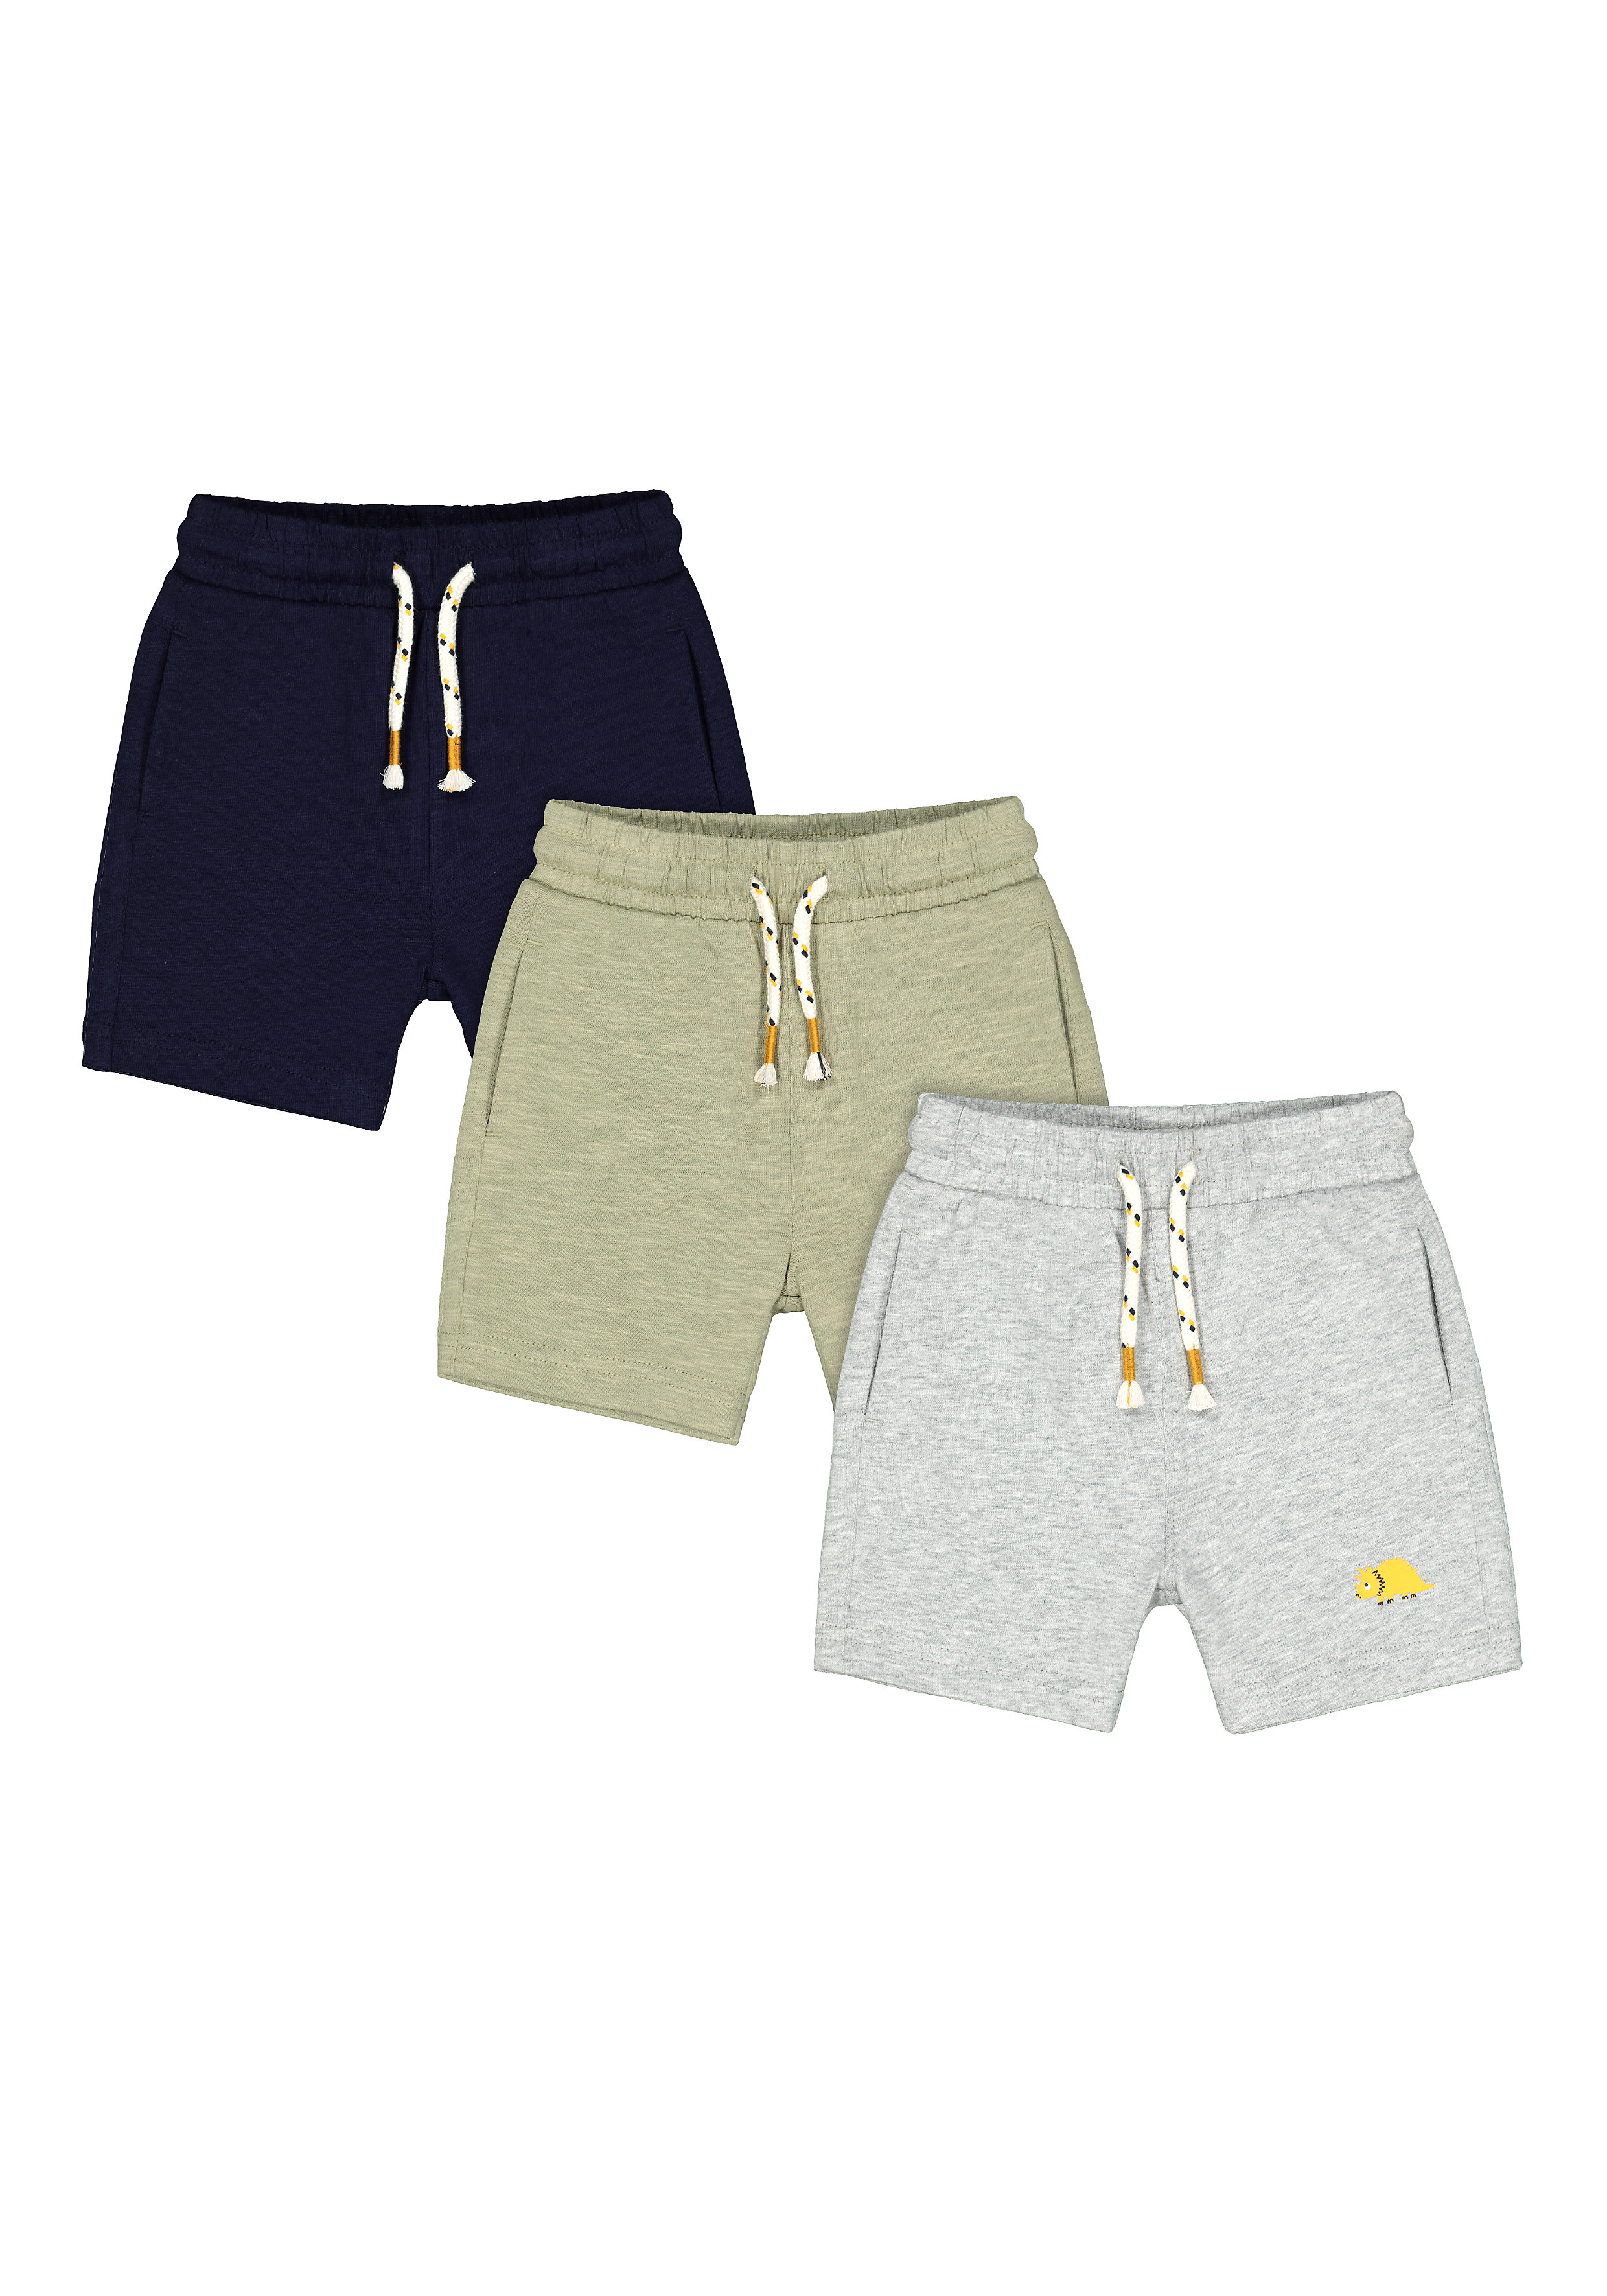 Mothercare | Boys Shorts Dino Print - Pack Of 3 - Multicolor